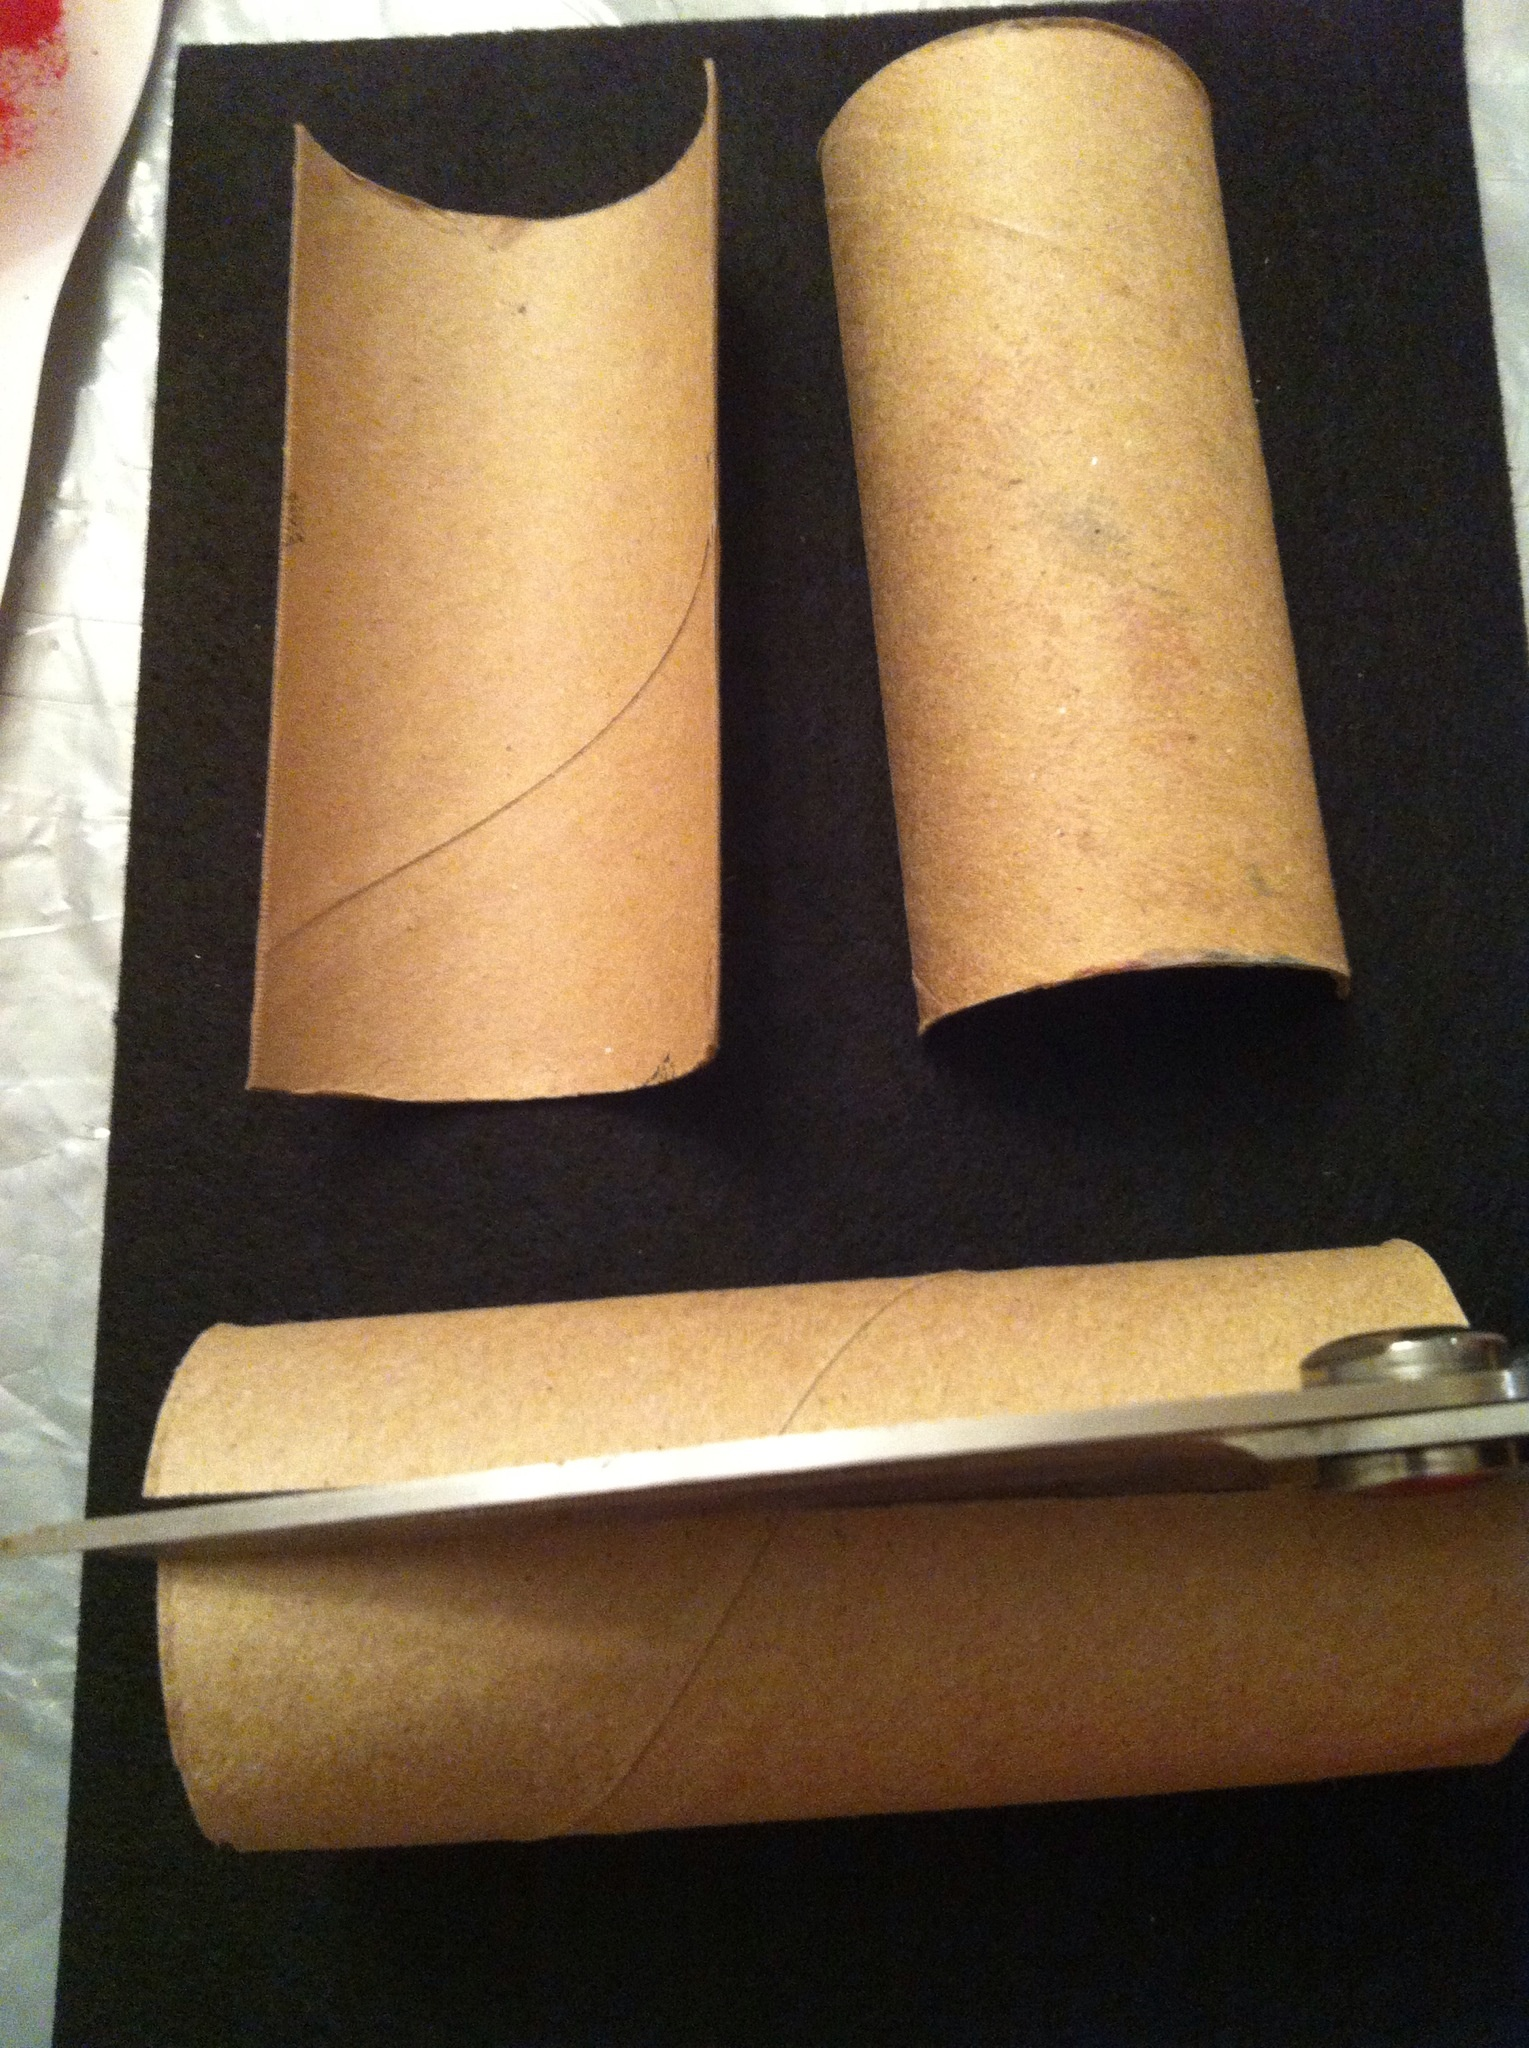 How To Napkin Holder From A Toilet Paper Roll 3 Steps B C Guides